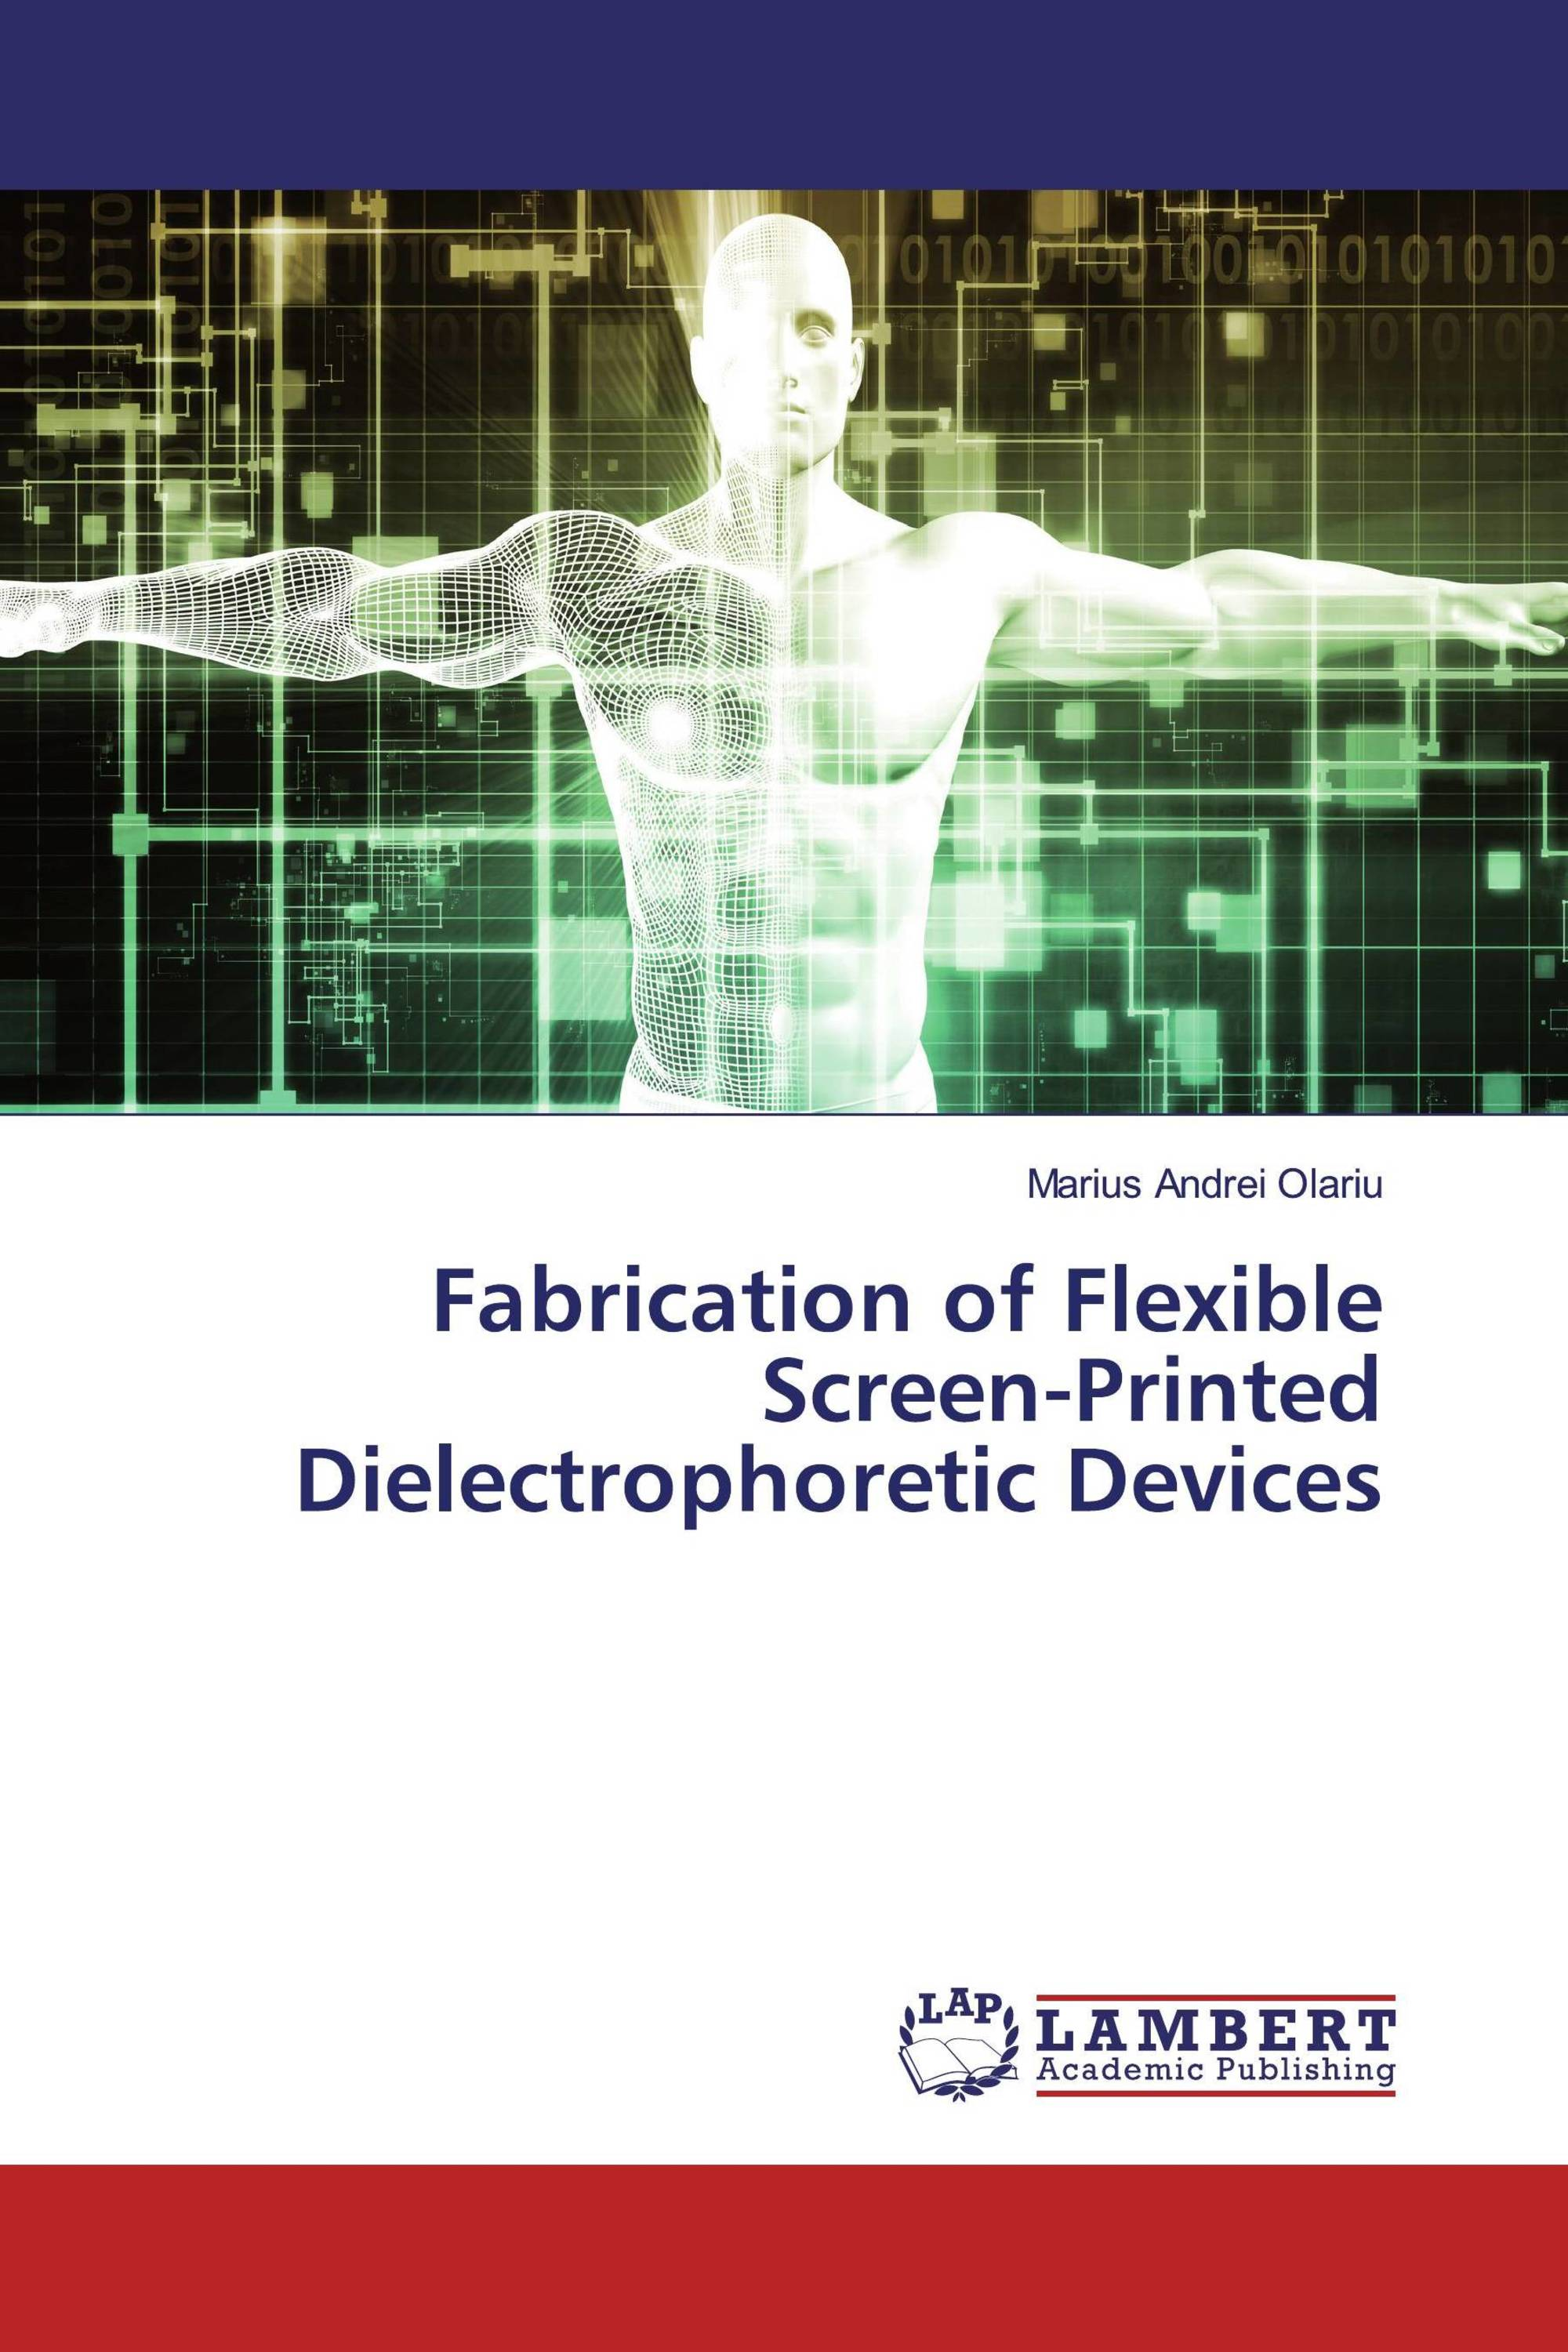 Fabrication of Flexible Screen-Printed Dielectrophoretic Devices